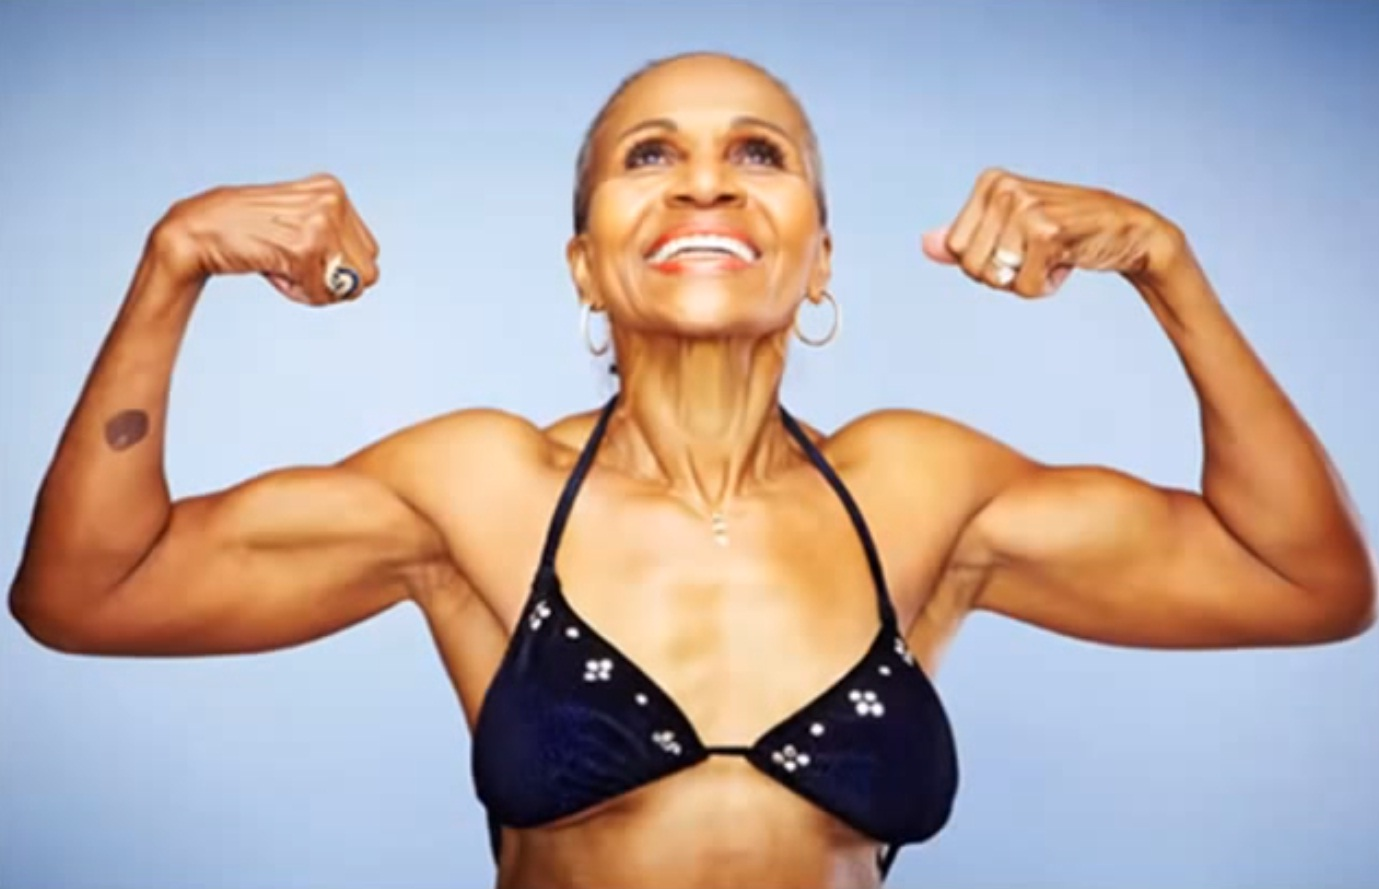 Meet 80-year-Old Female Bodybuilder Who Started Working Out at 56